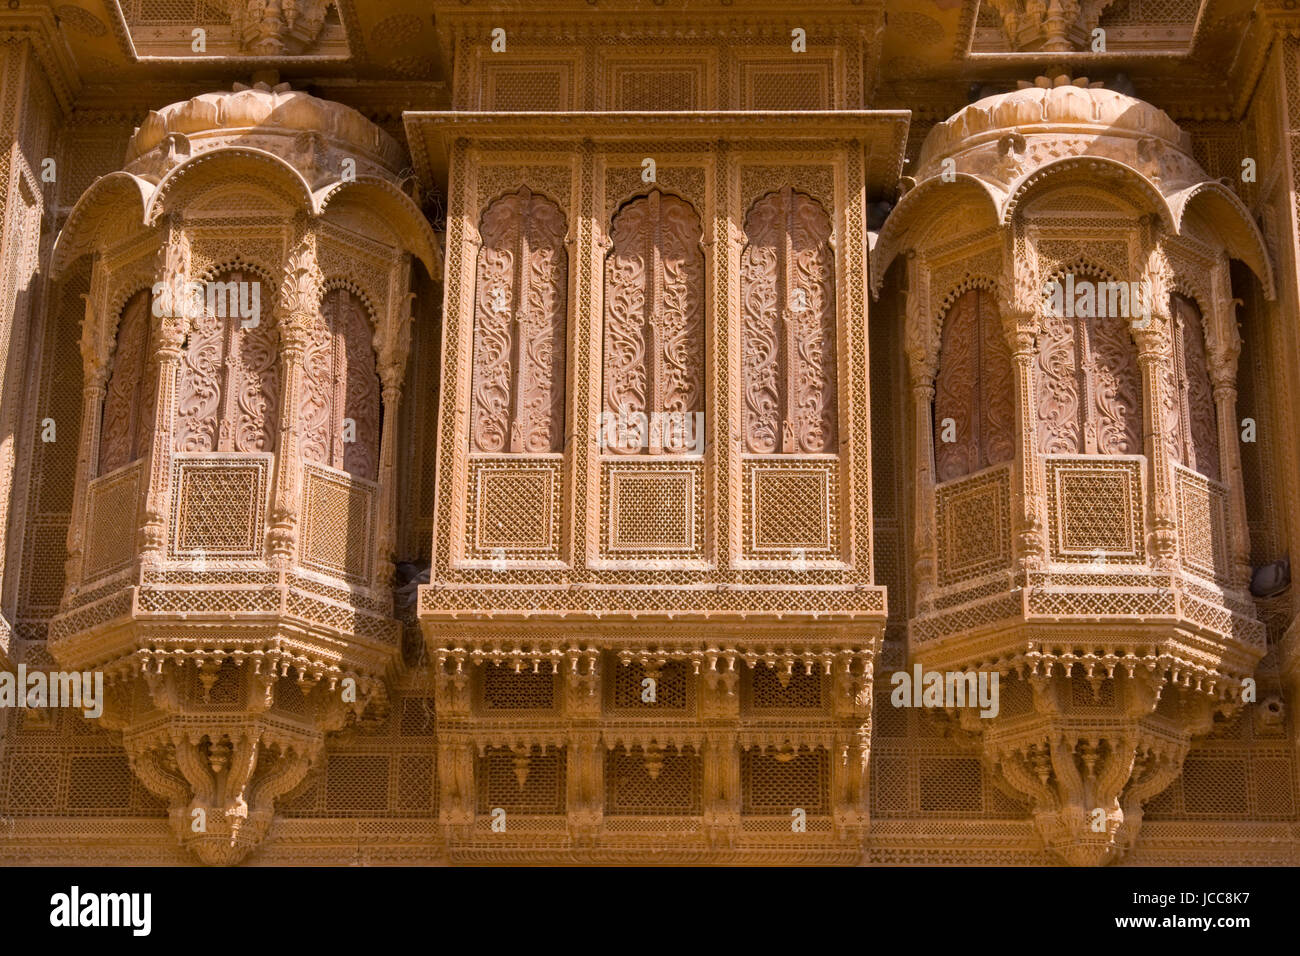 Detail of ornate window screens adorning the Patwon Haveli, a historoc merchants house, in the old town of Jaisalmer - Stock Image